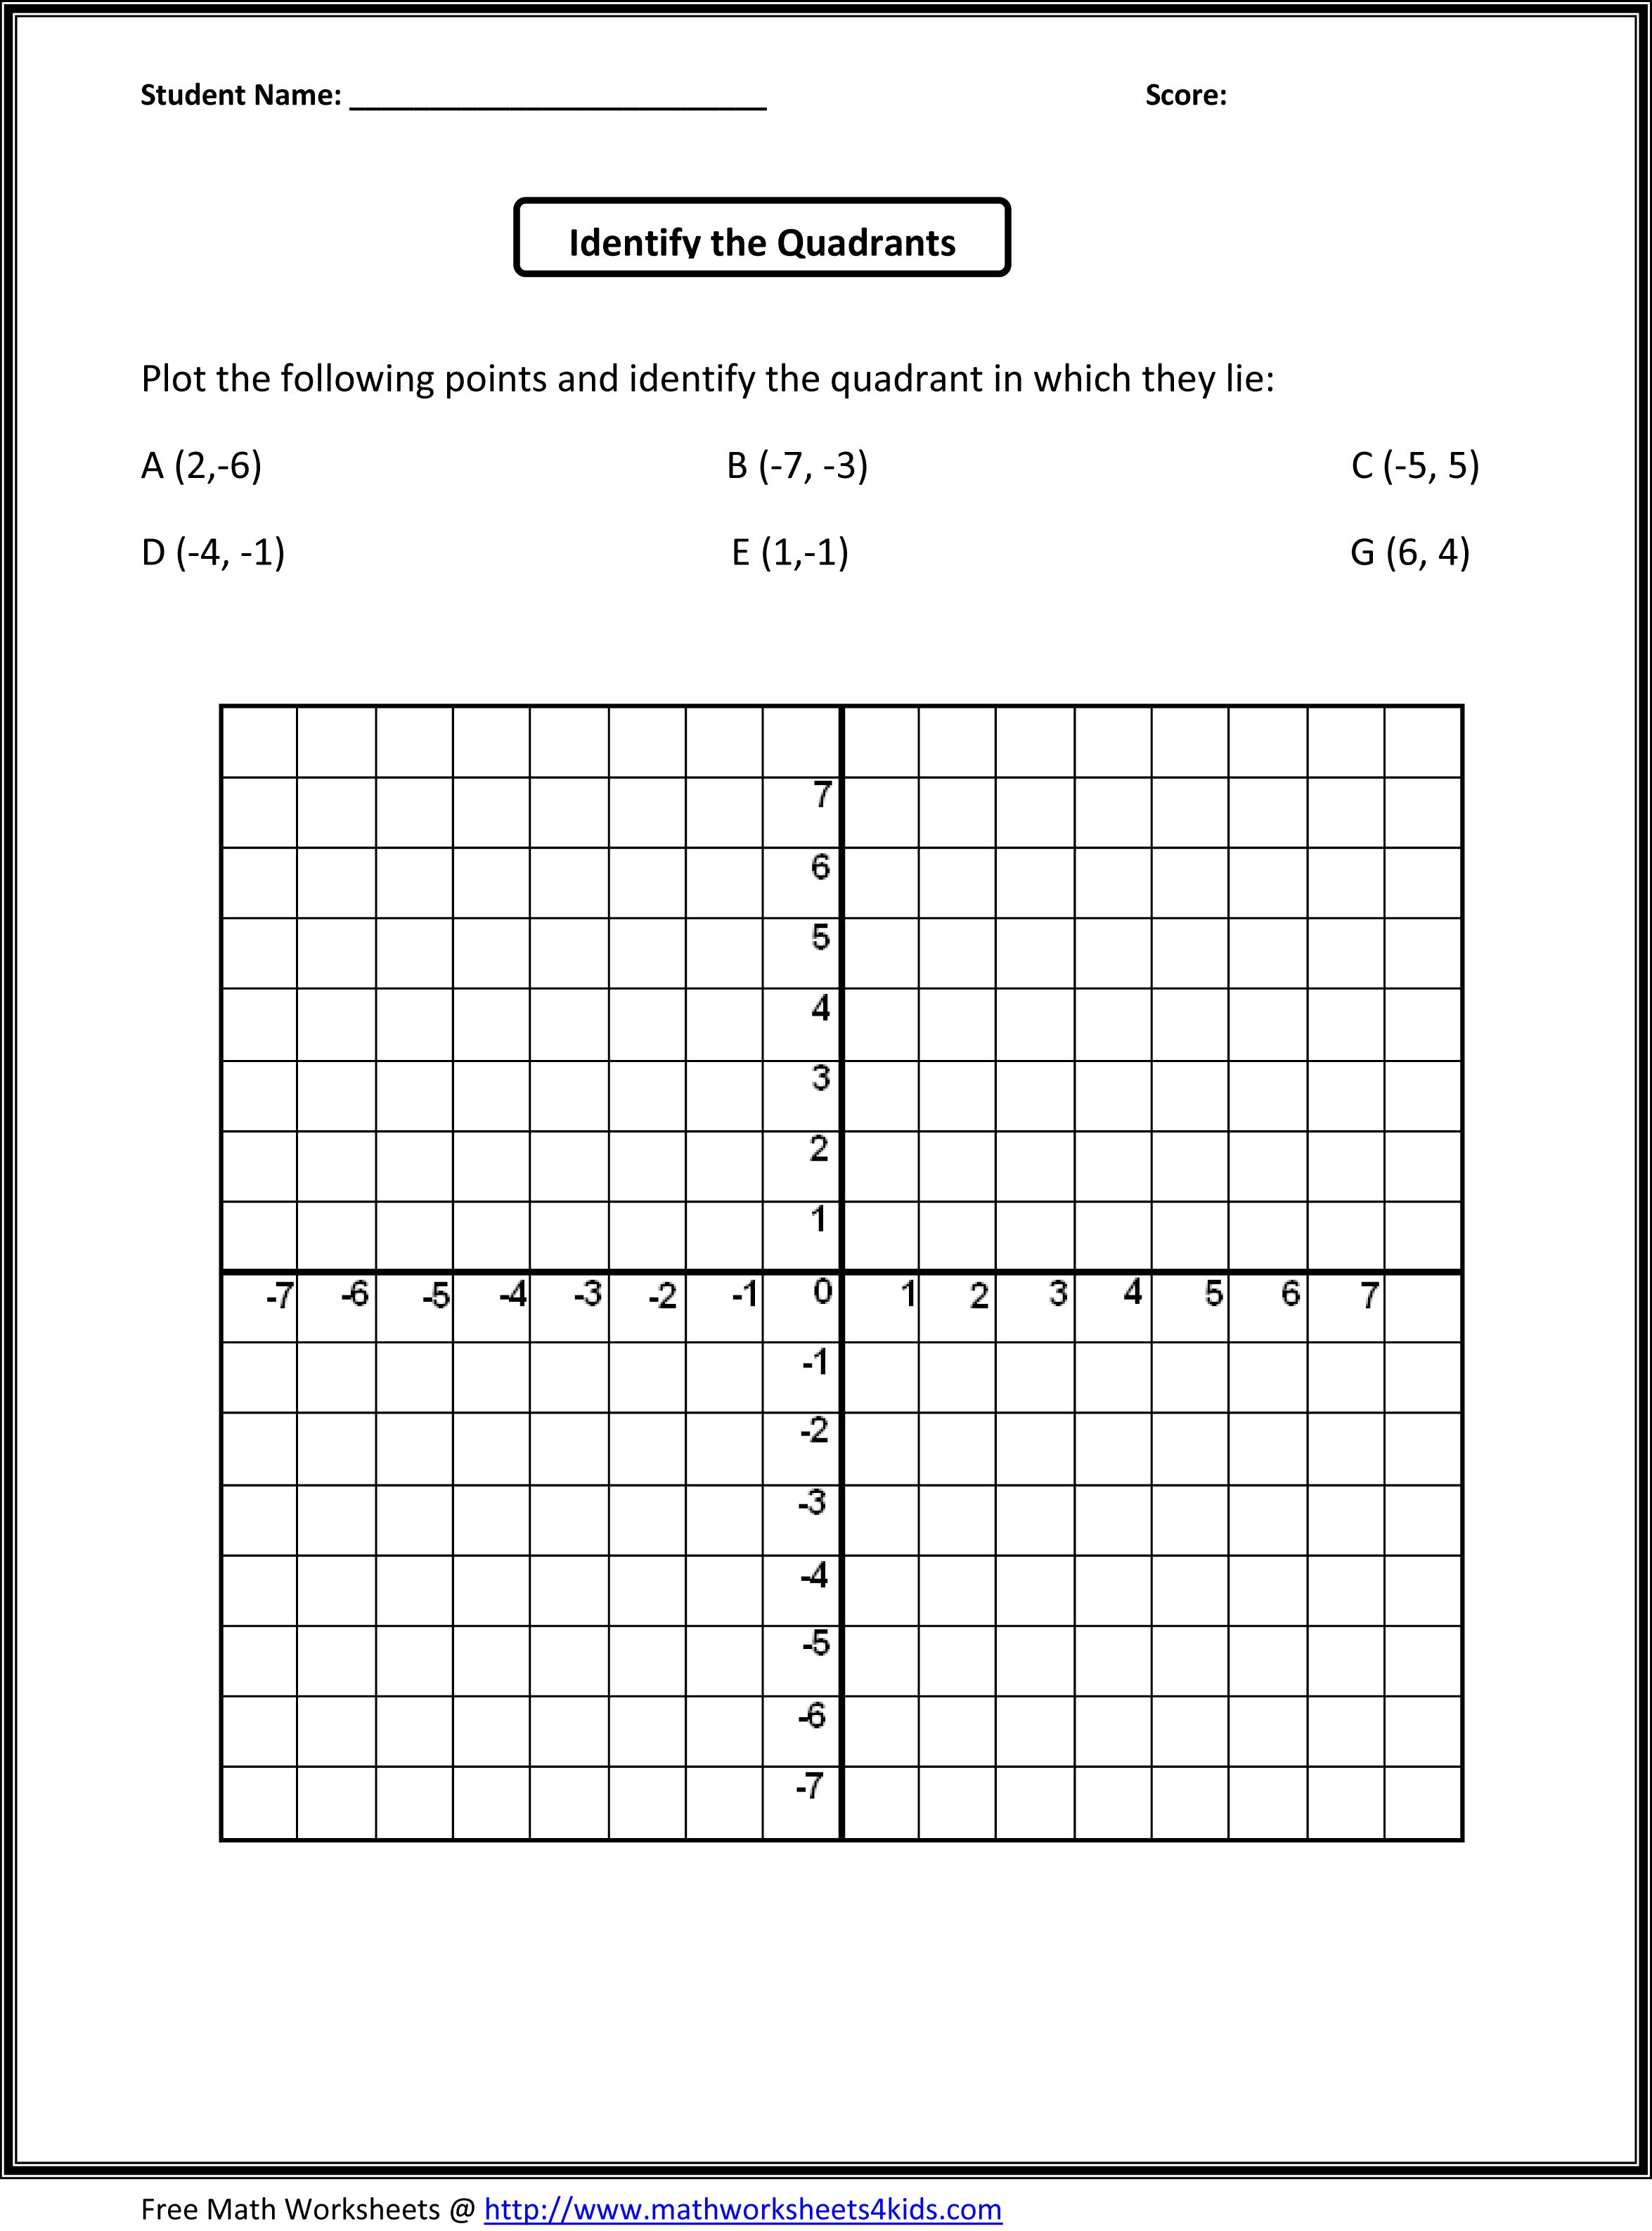 Worksheet Online Math Worksheets For Grade 6 grade 6 math worksheet mental maths tests year worksheets6th 1000 images about madi on pinterest 5th math